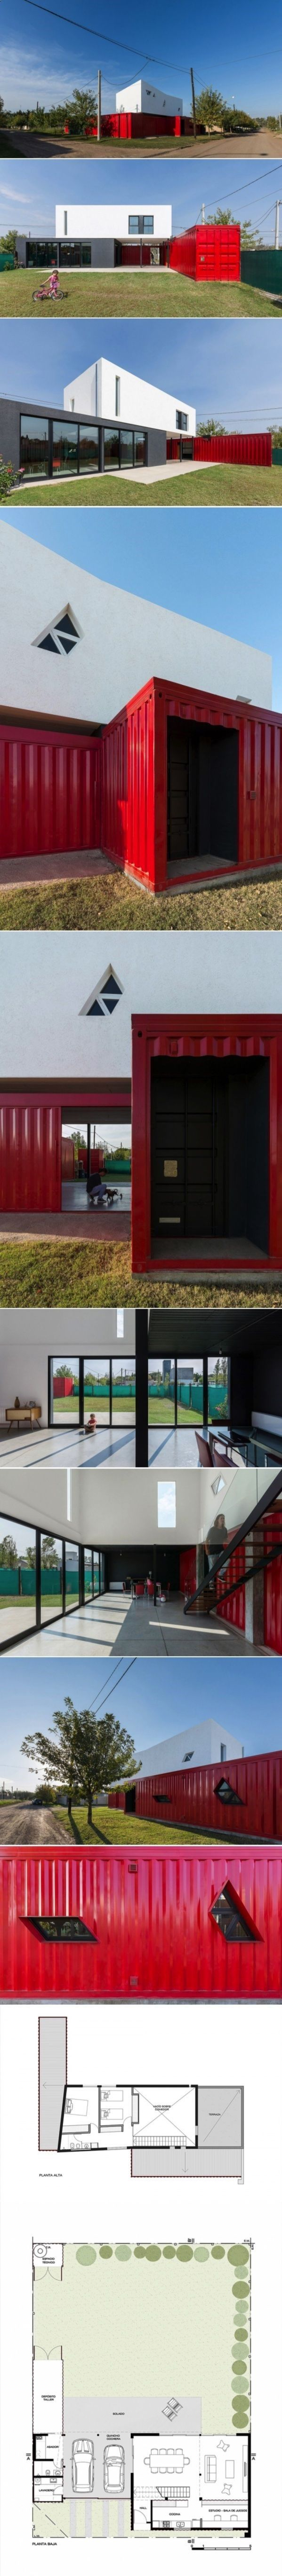 container house a container home with personality who else wants simple step by - Versand Container Huser Design Plne